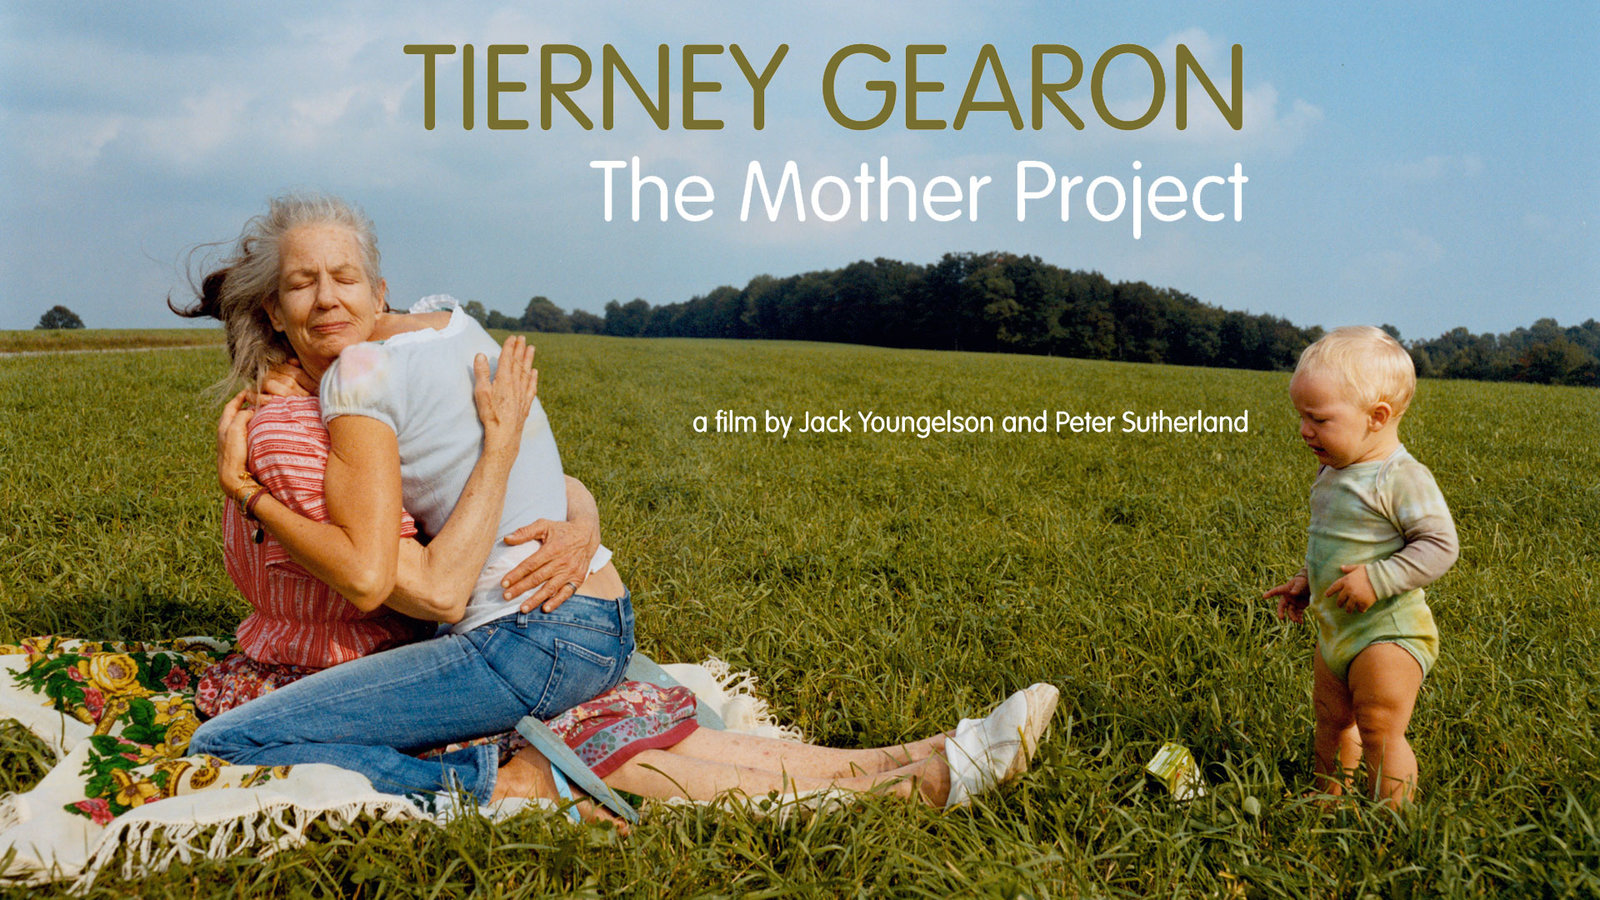 Tierney Gearson: The Mother Project - A Controversial Photographer and Her Relationship with Art and Family